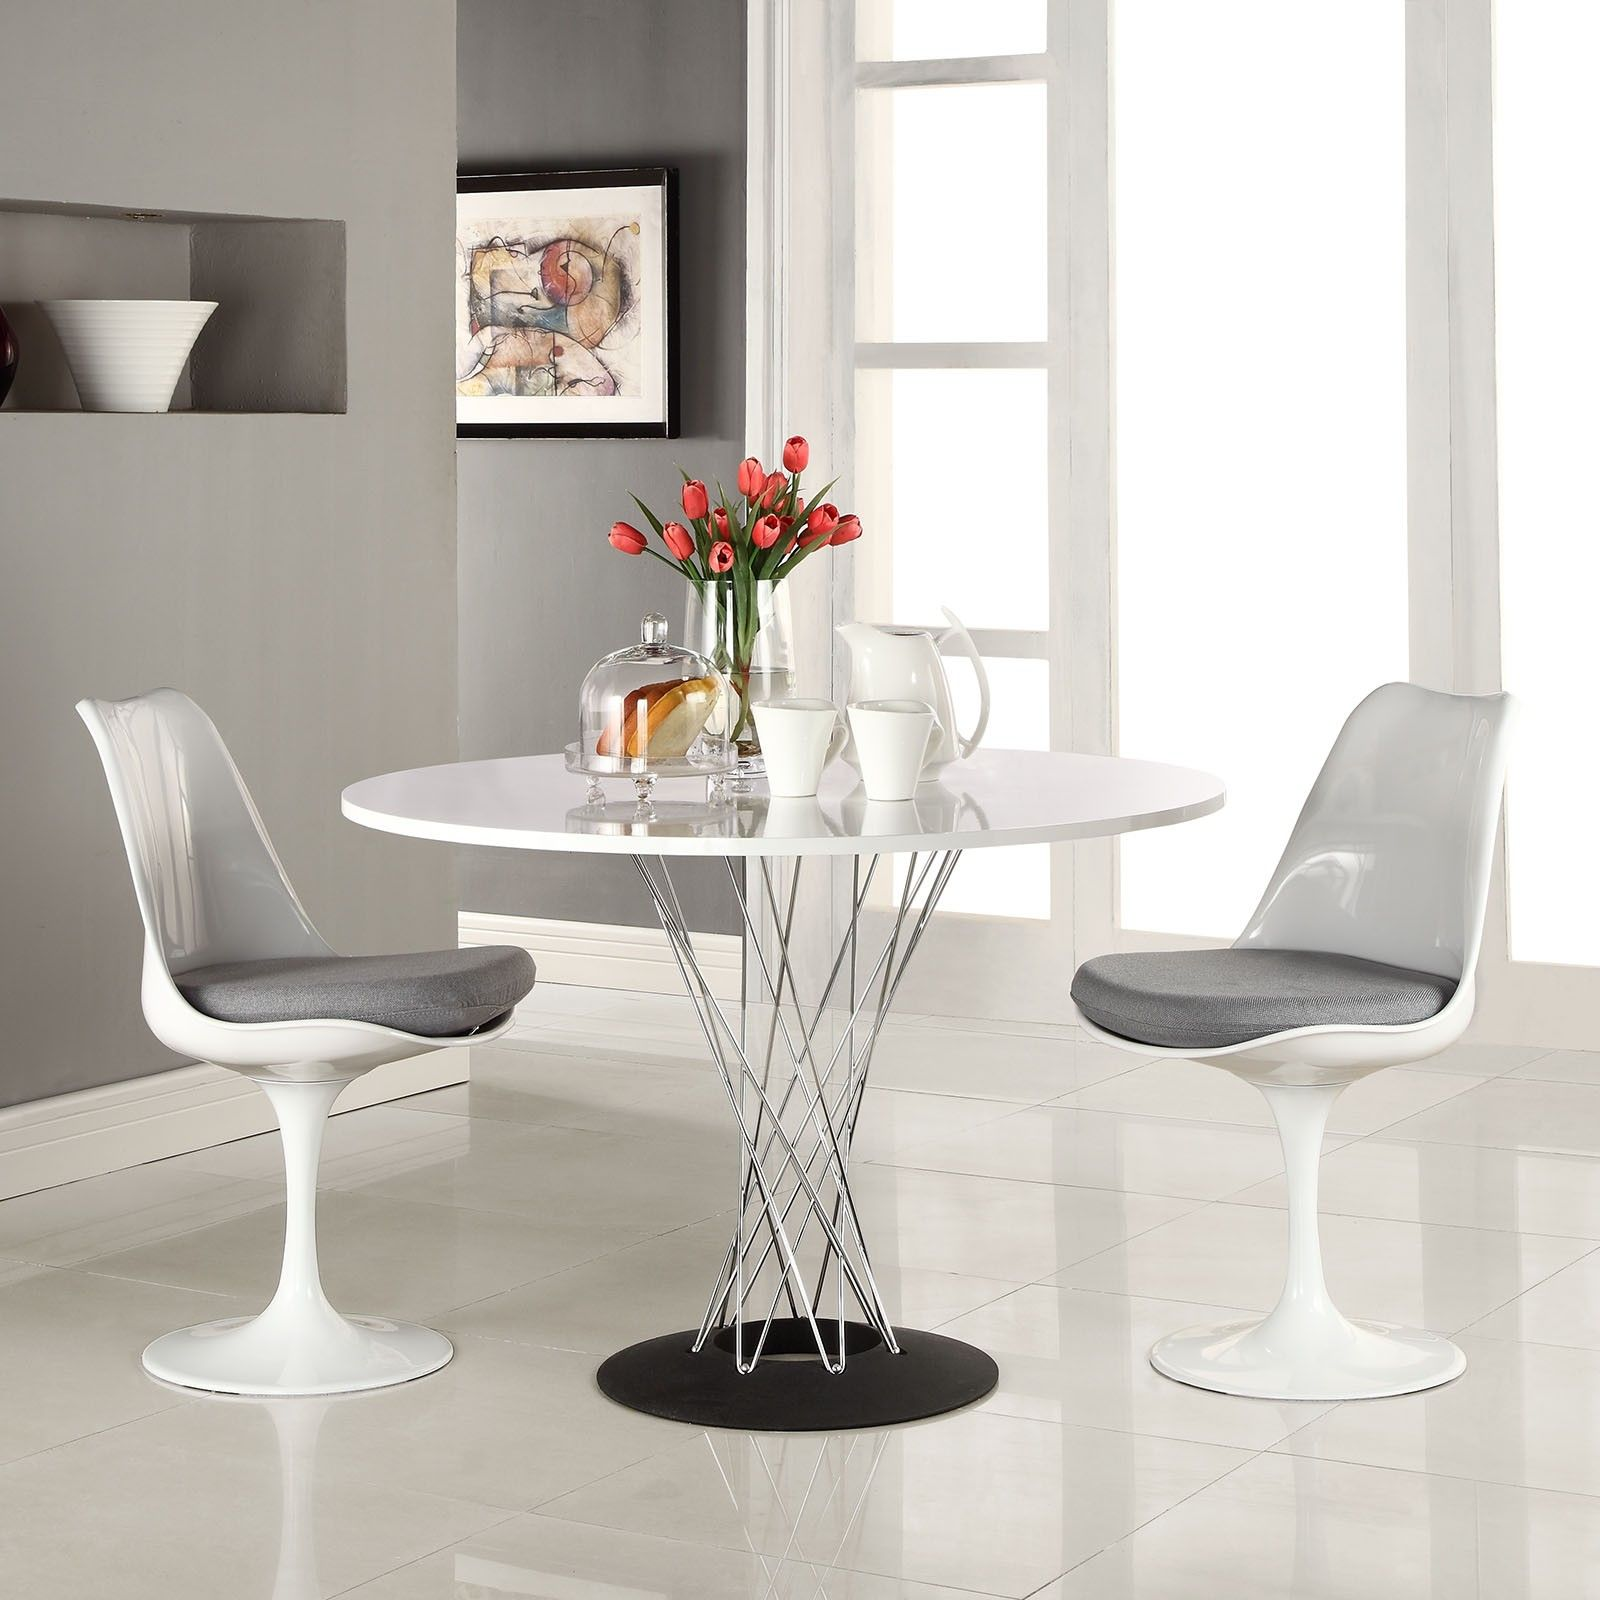 round white kitchen table 15 White Round Table Design Ideas For Extravagant Look Of Your DIning Room